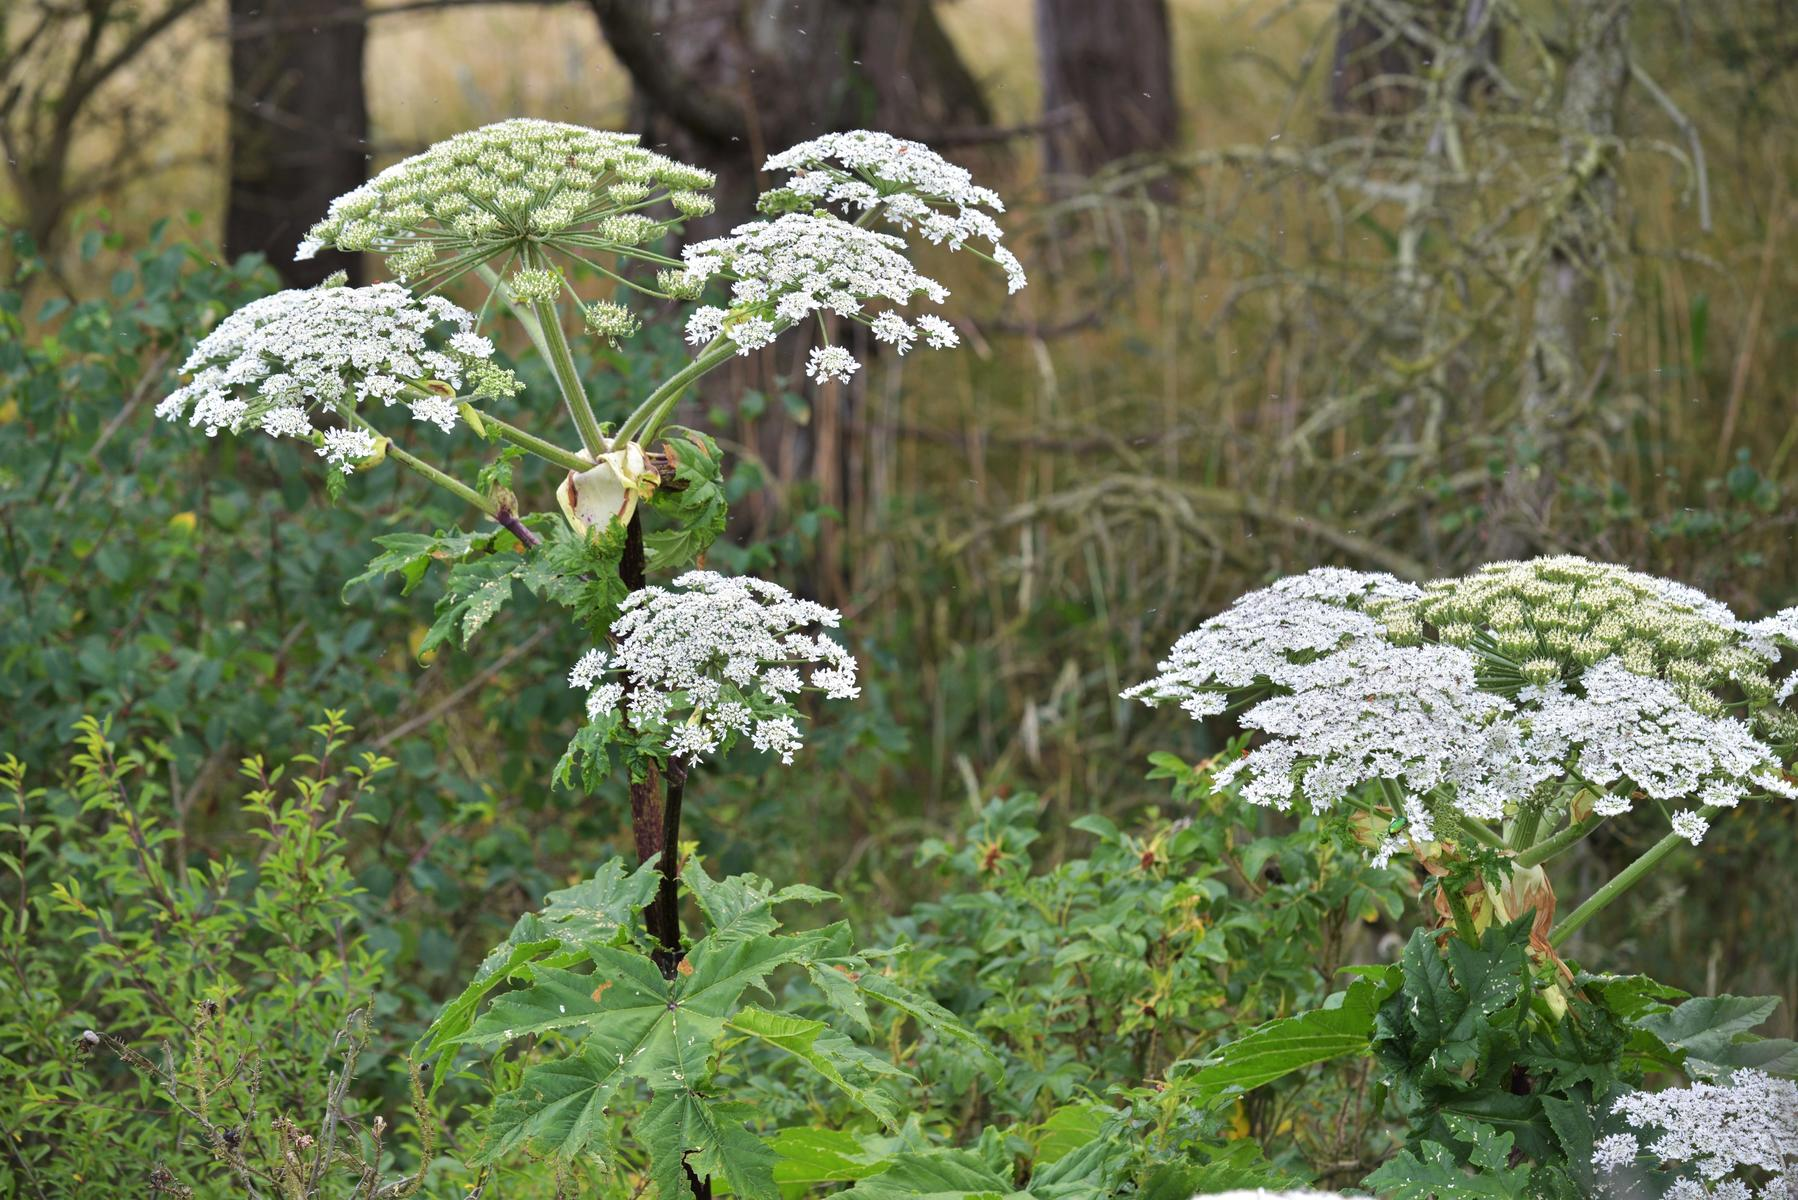 Giant Hogweed Heracleum Mantegazzianum Poisonous Plant